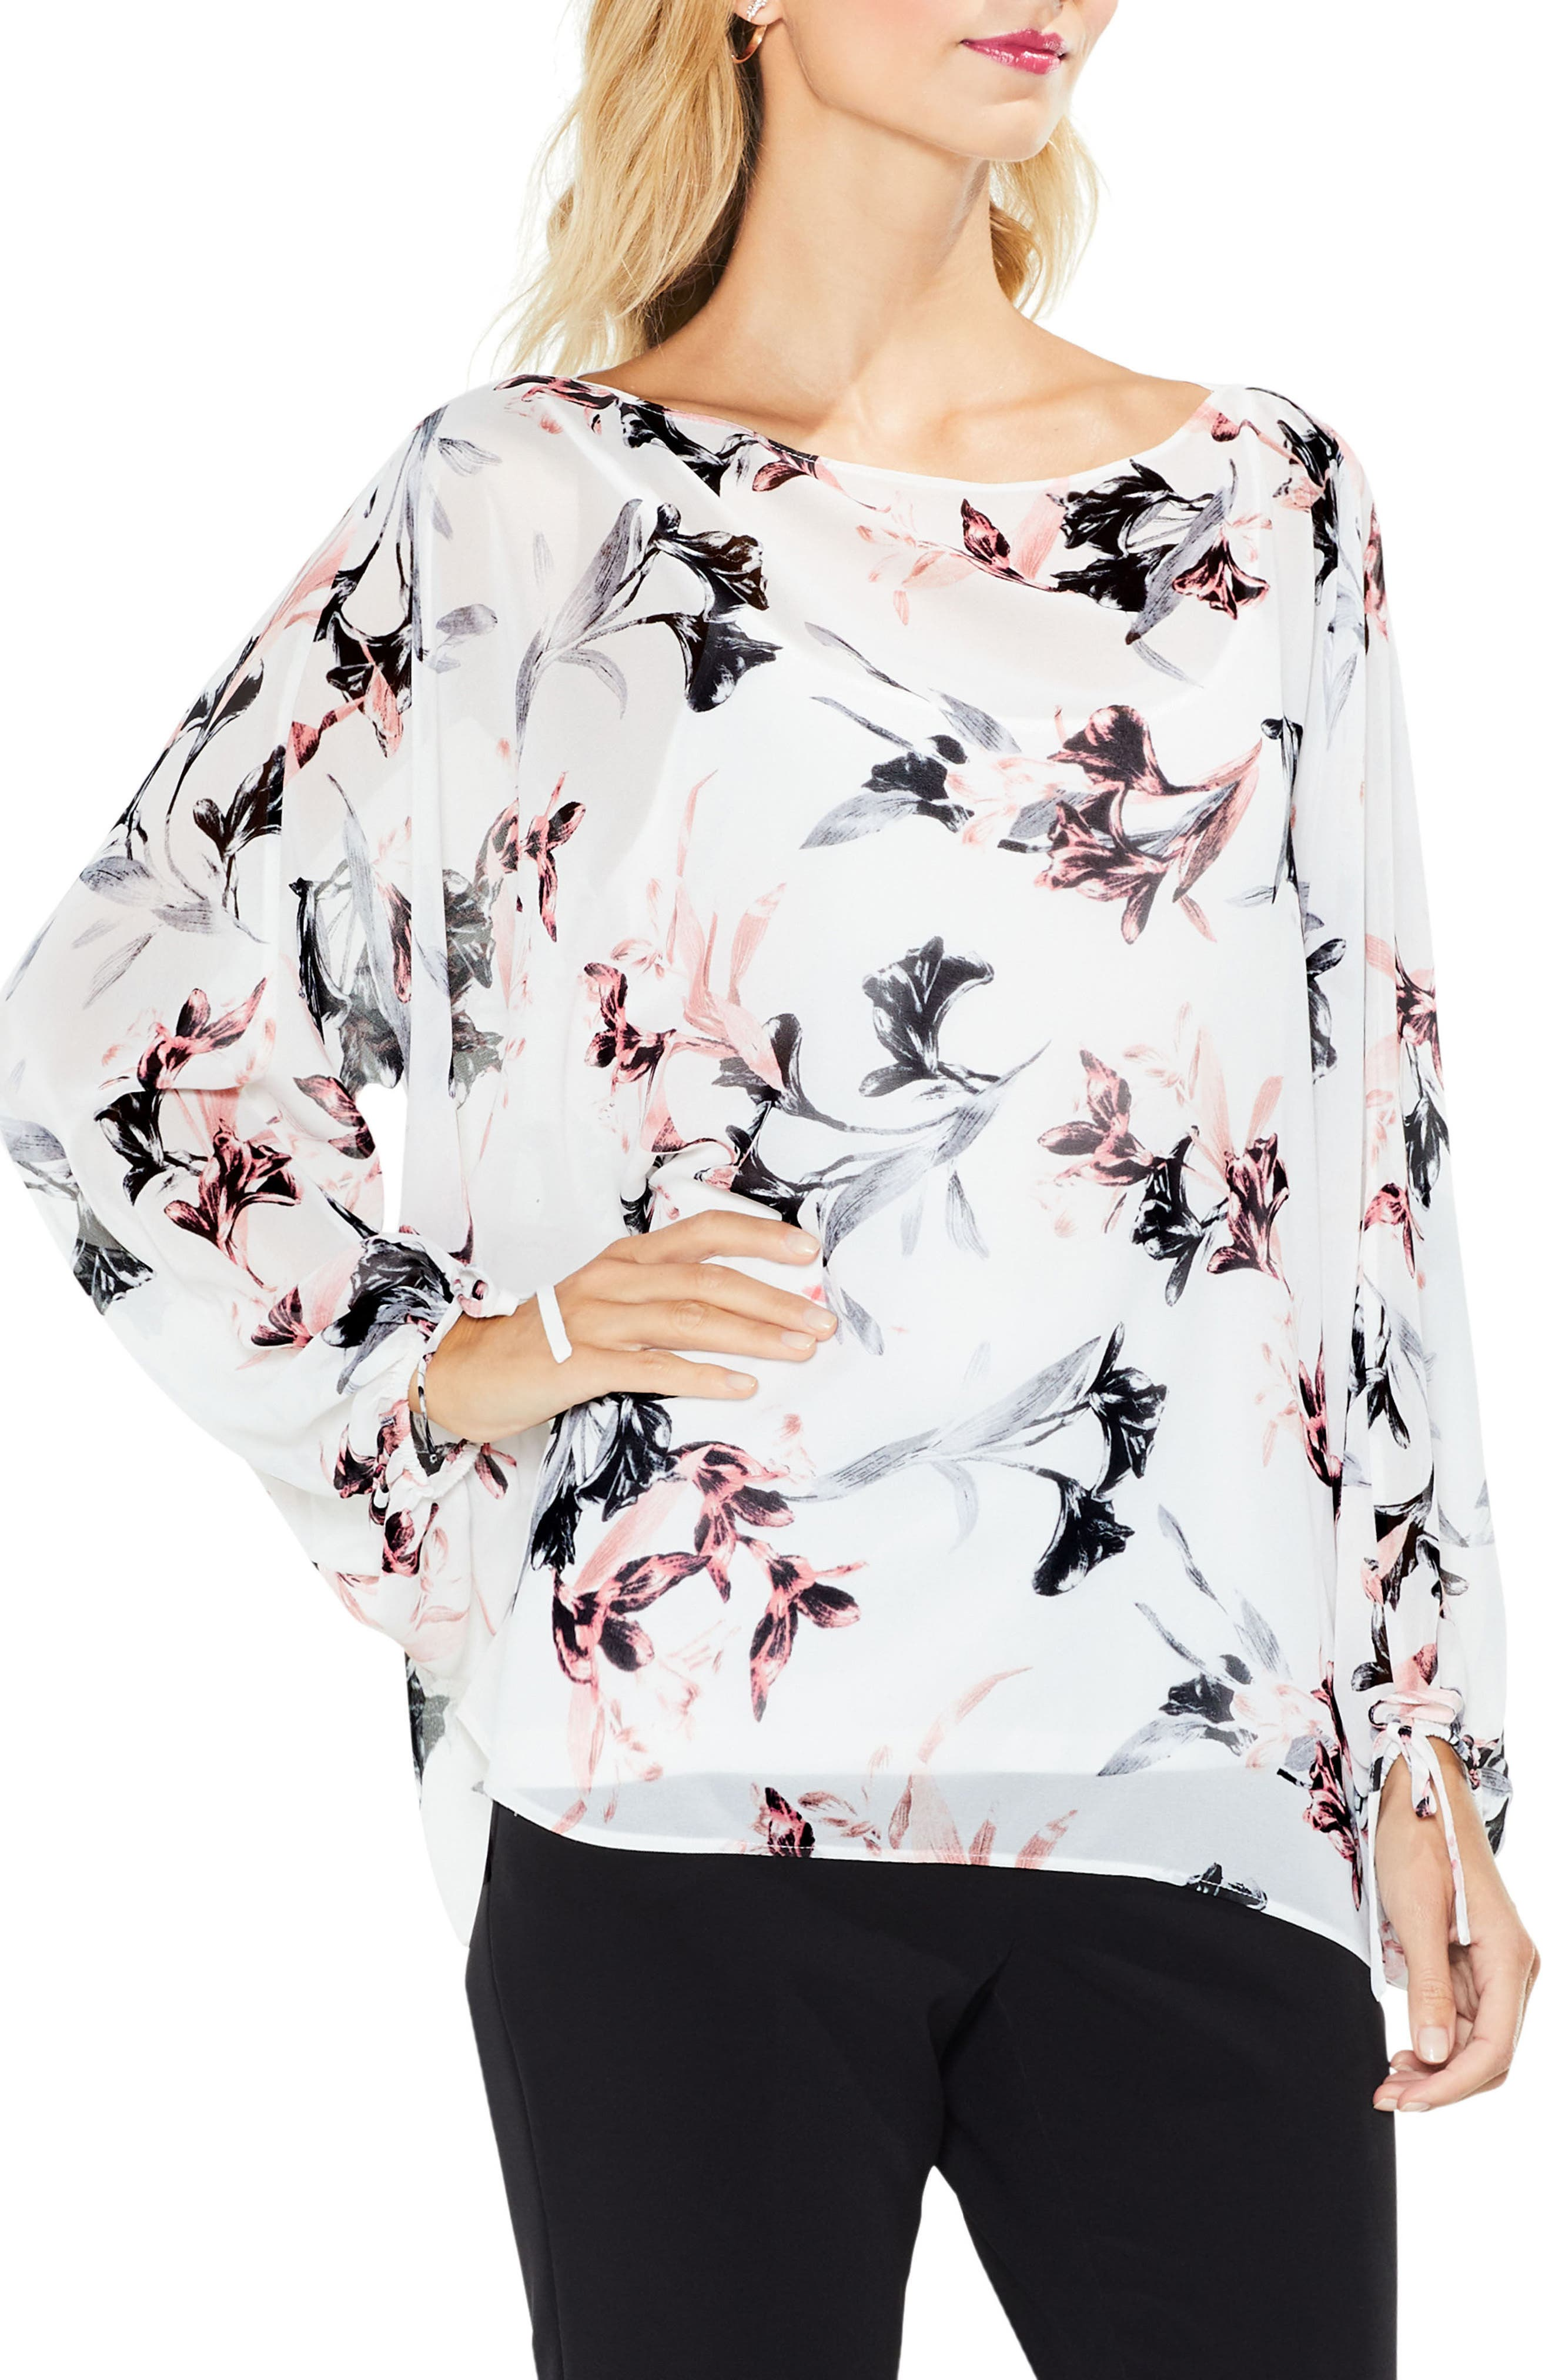 Main Image - Vince Camuto Lily Melody Blosuson Sleeve Top